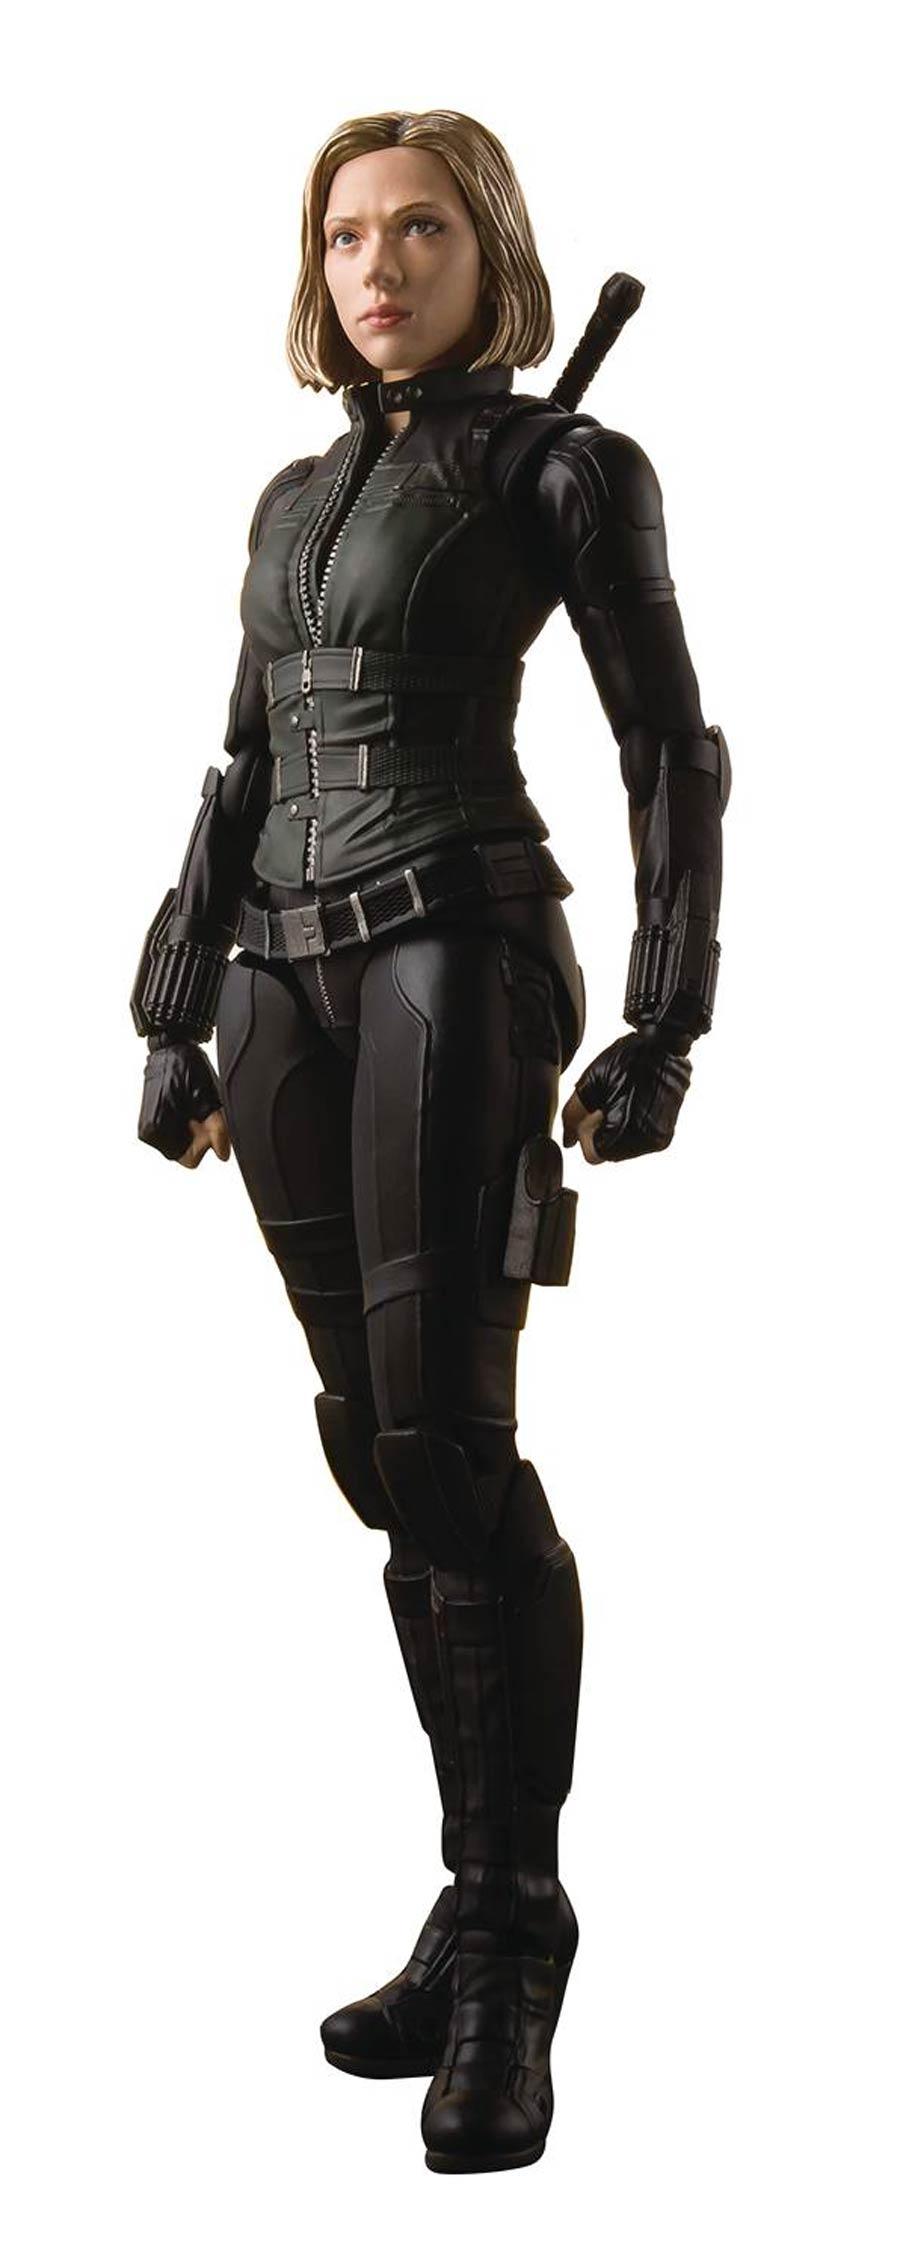 Marvel S. H. Figuarts - Avengers Infinity War - Black Widow & Tamashii Effect Explosion Action Figure